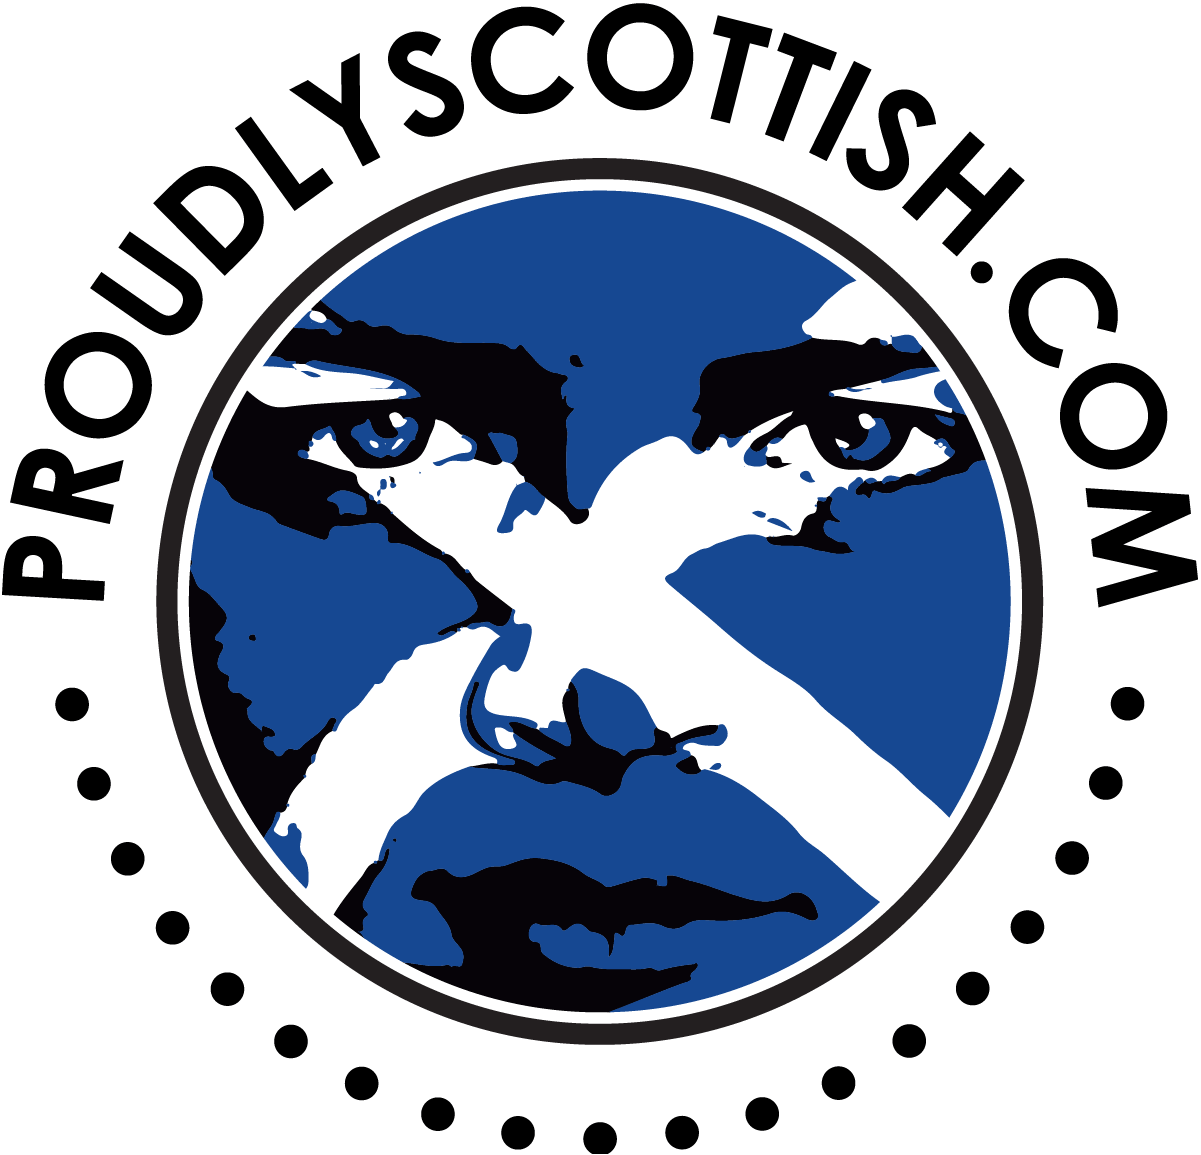 proudlyscottish